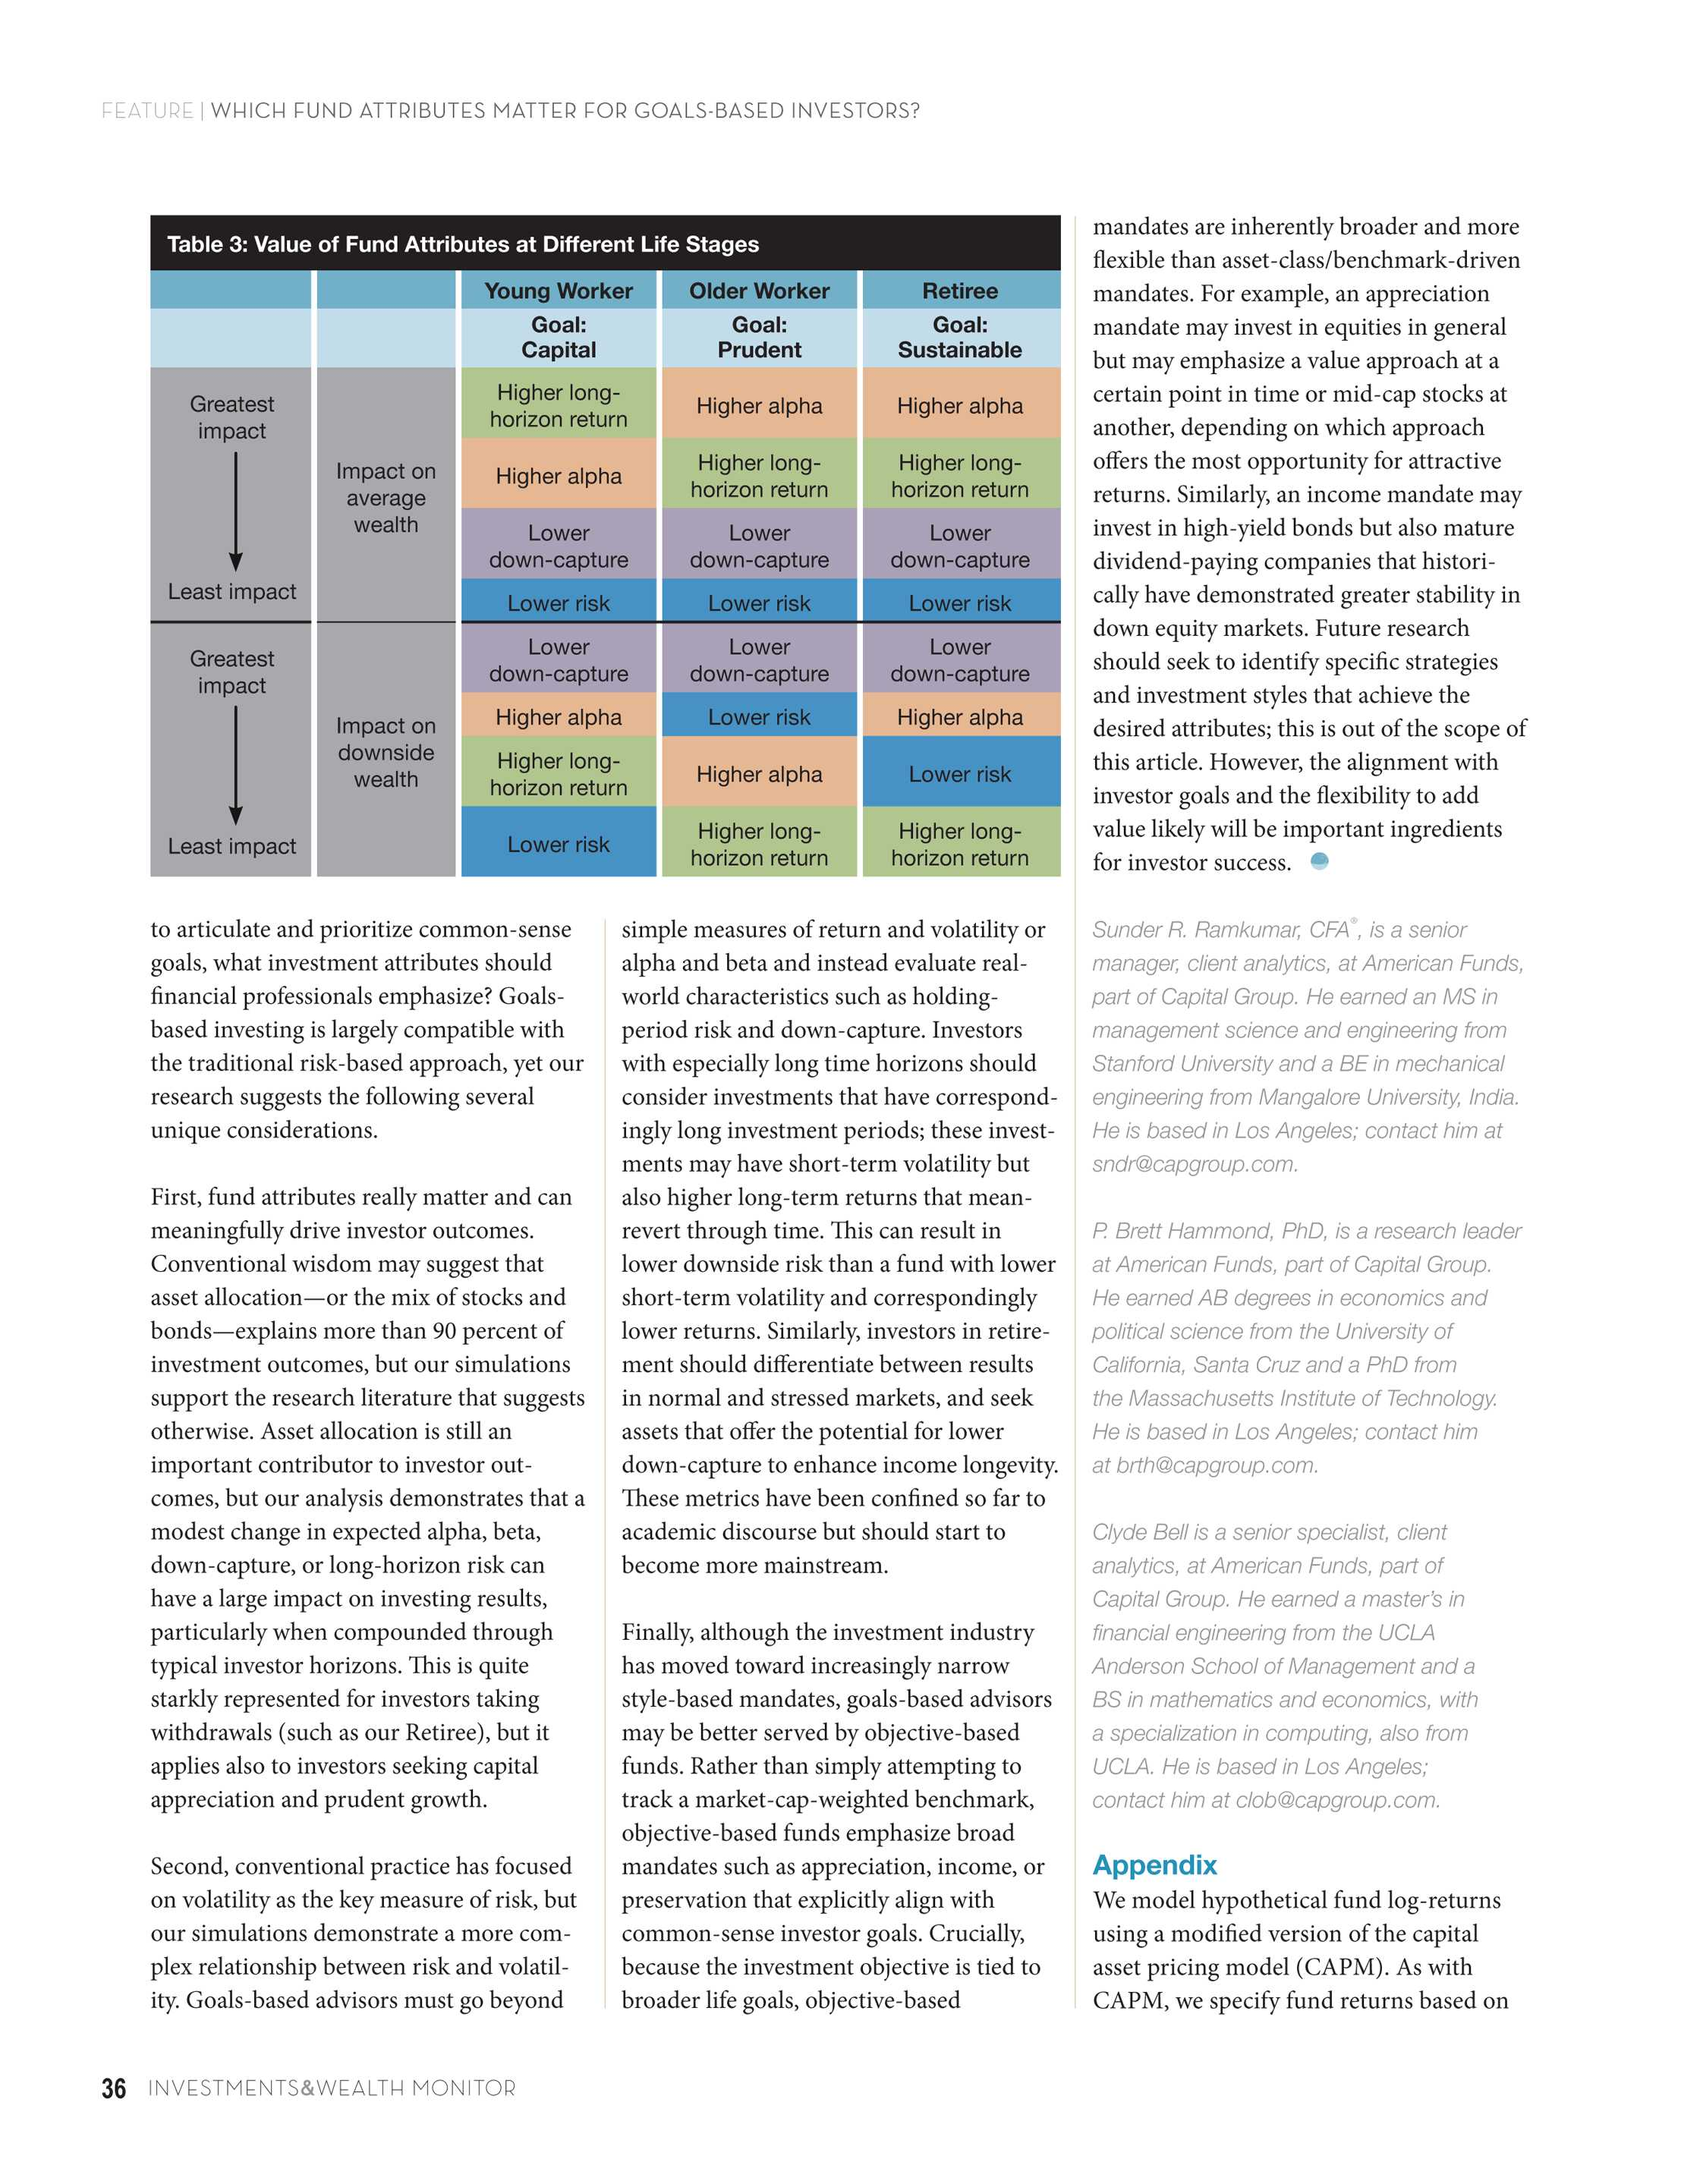 Investments & Wealth Monitor - January/February 2017 - page 36